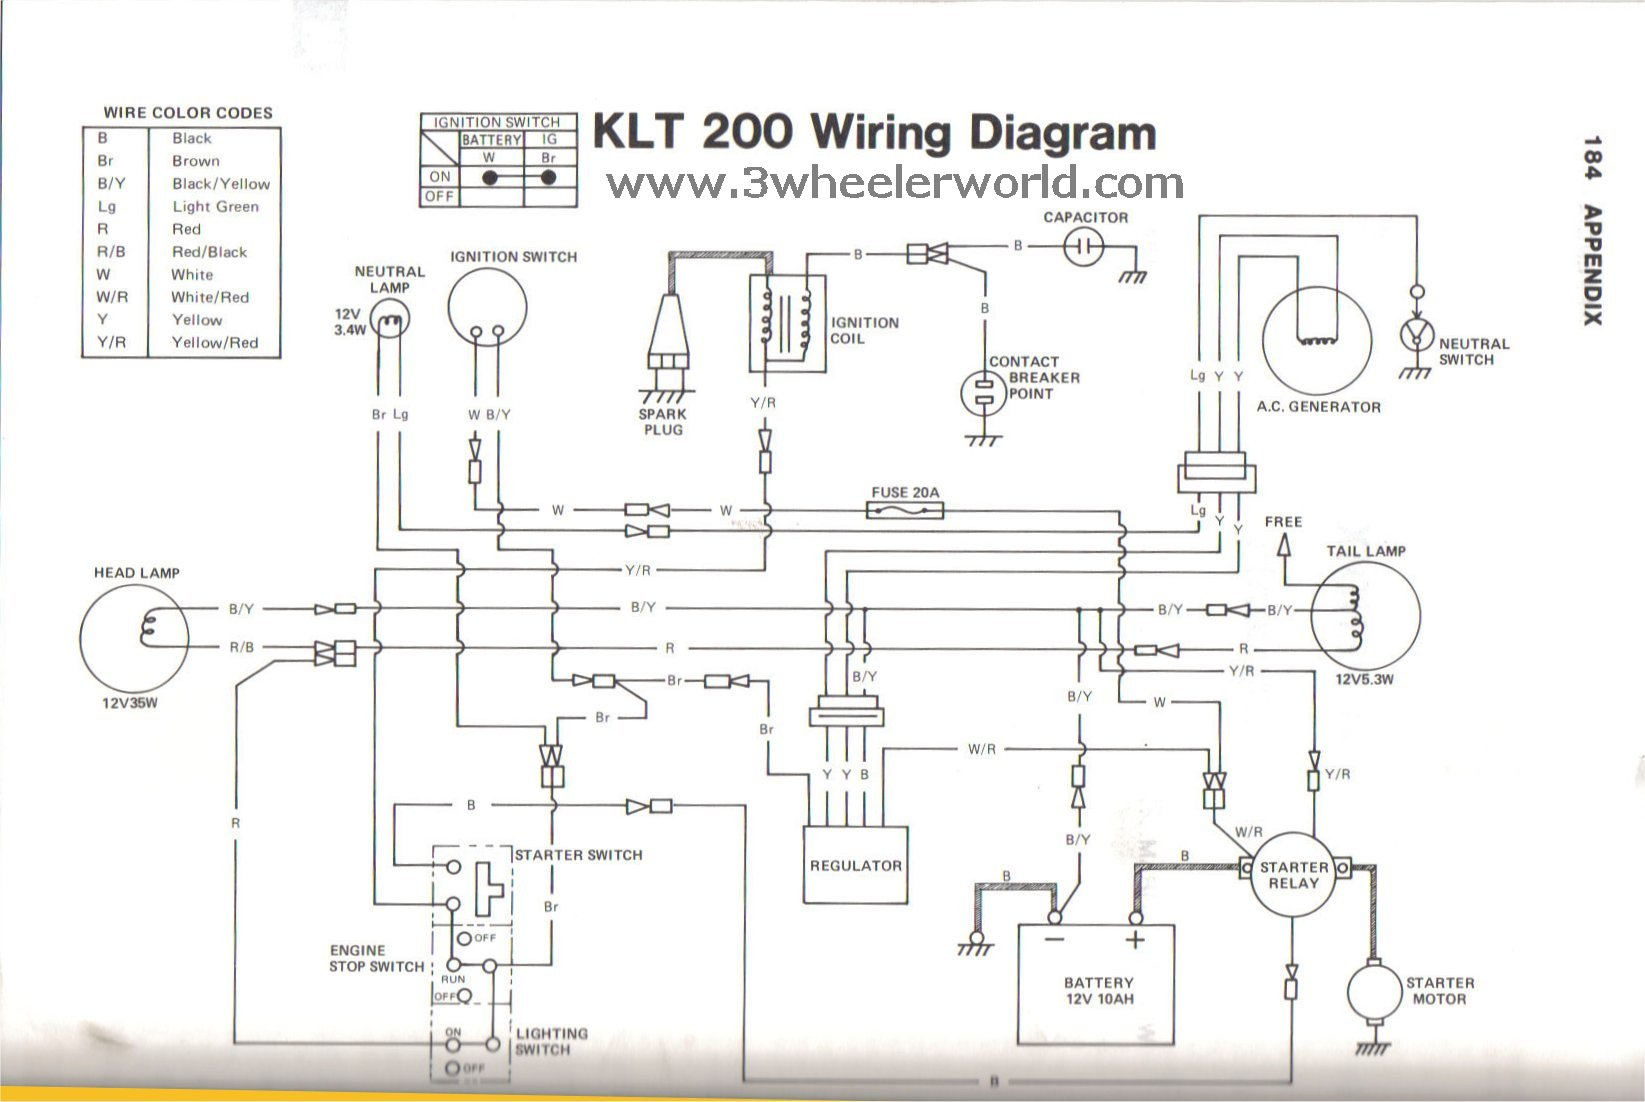 need free wire diagram for a kawasaki klt 200 atc ... 1982 mustang wiring diagrams